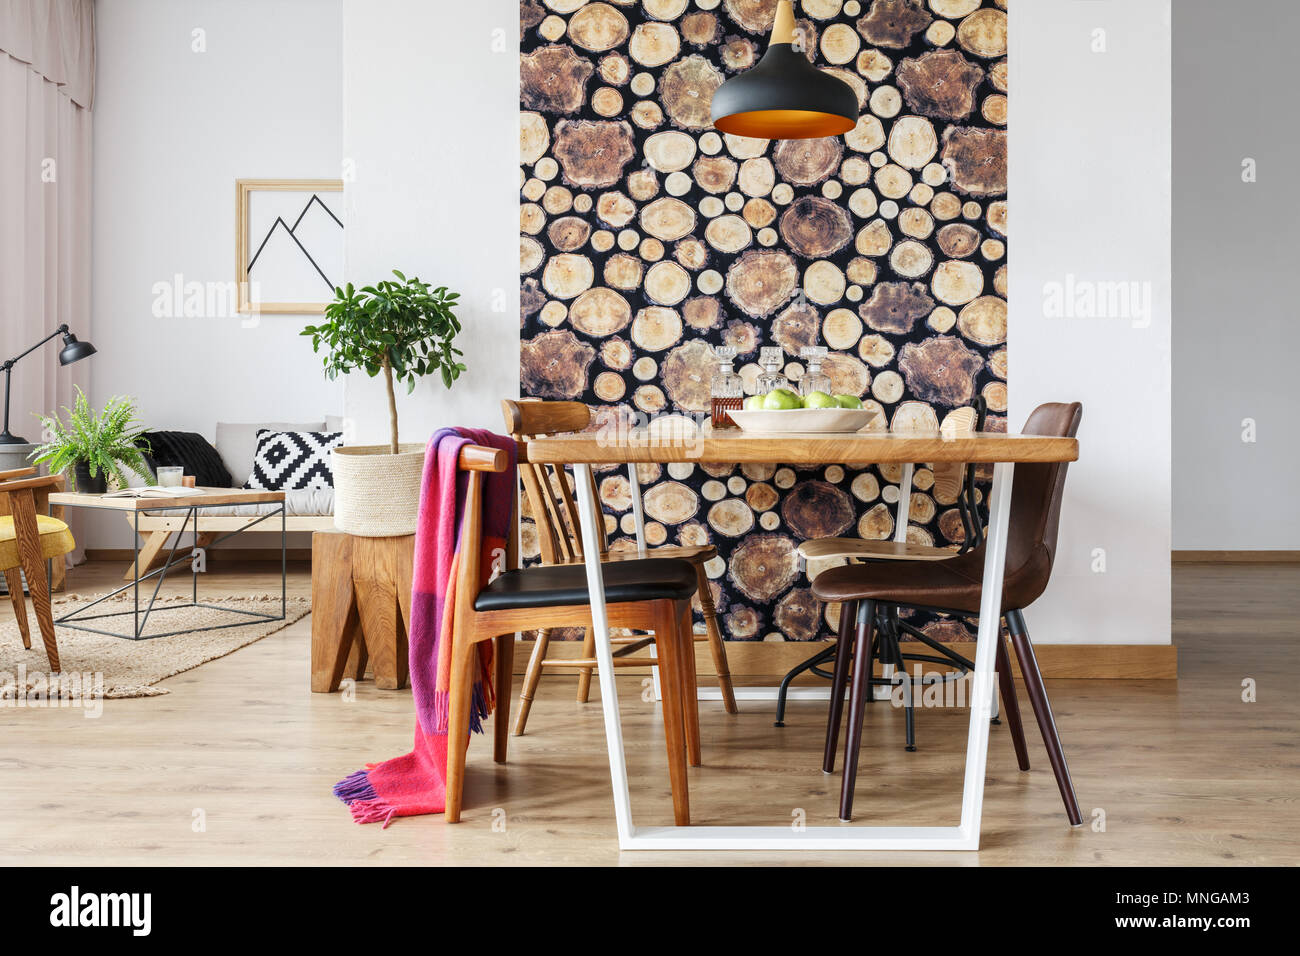 Cozy rustic design of spacious warm loft interior with wooden log wallpaper and natural tree stump - Stock Image